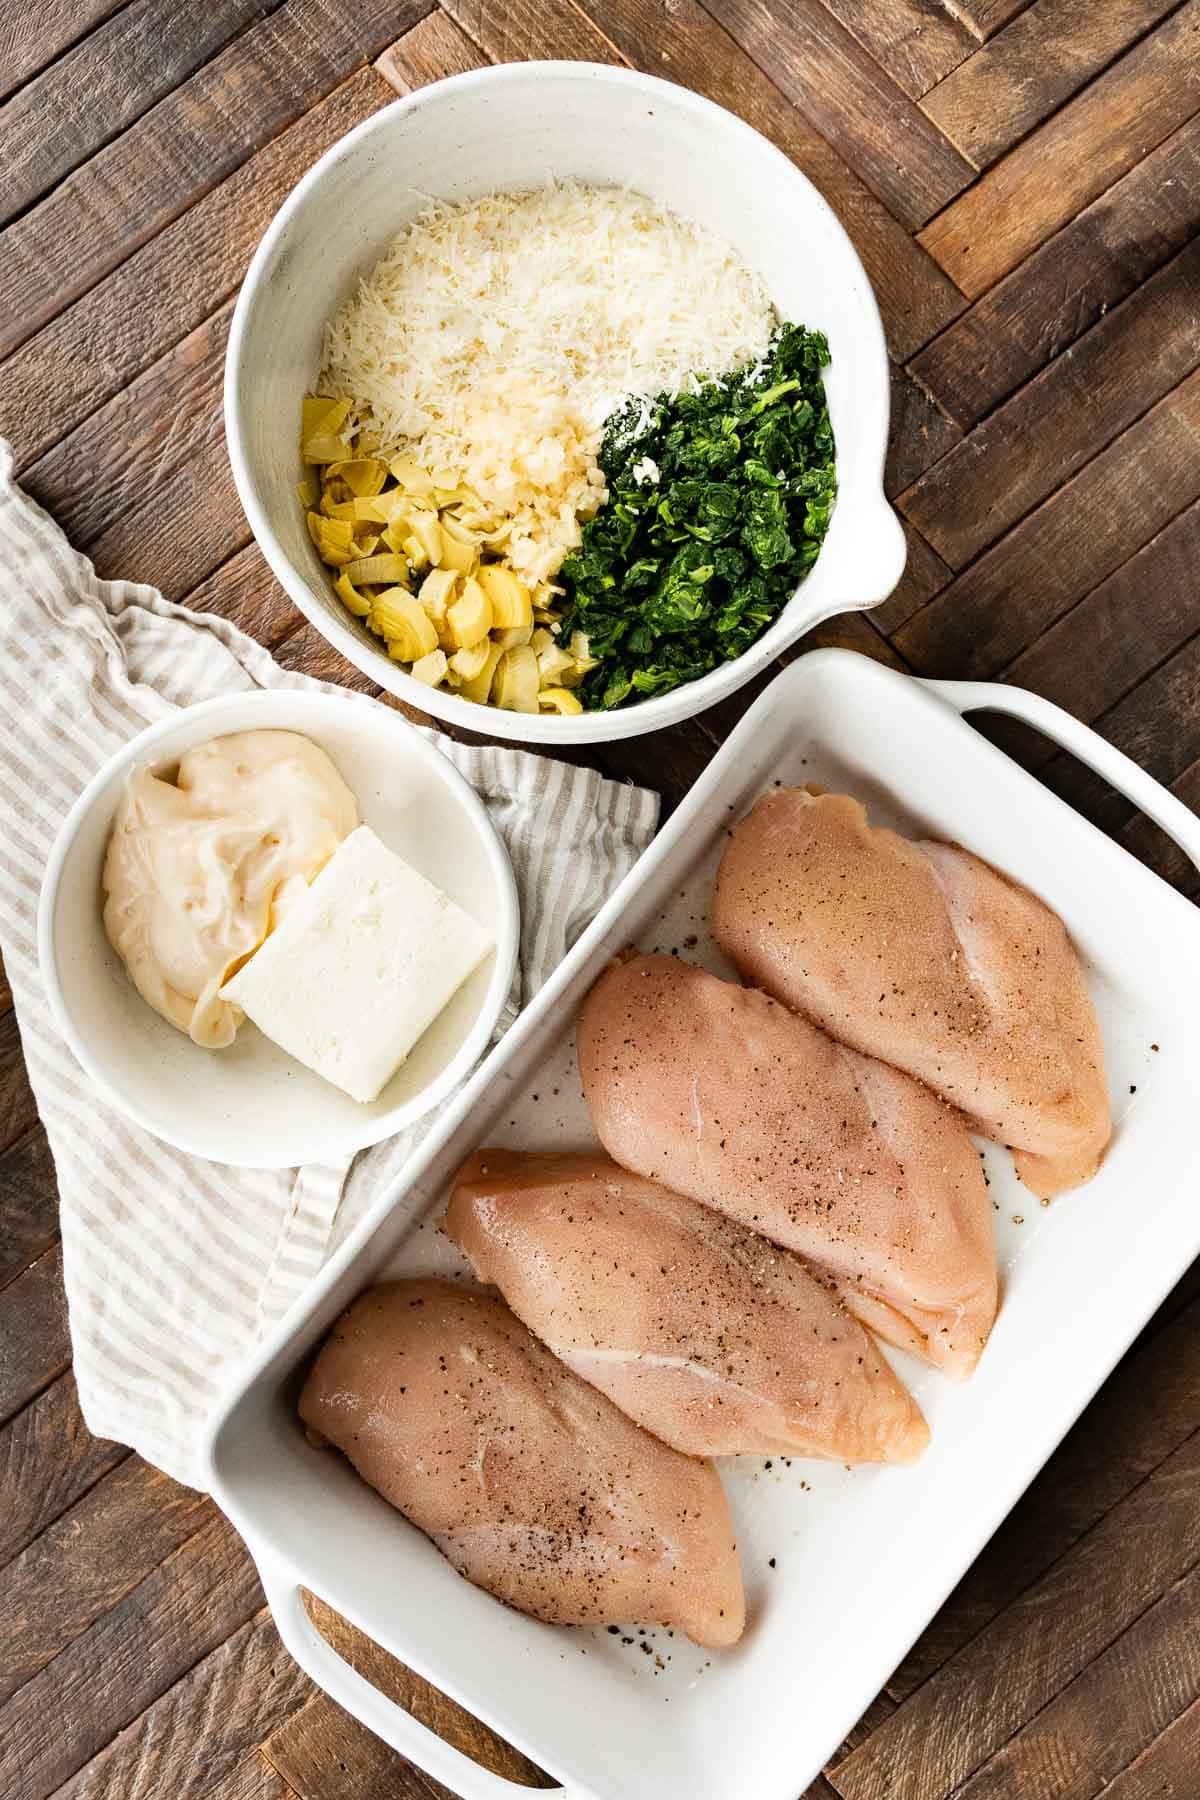 Chicken in baking dish and topping ingredients for Baked Spinach Artichoke Chicken